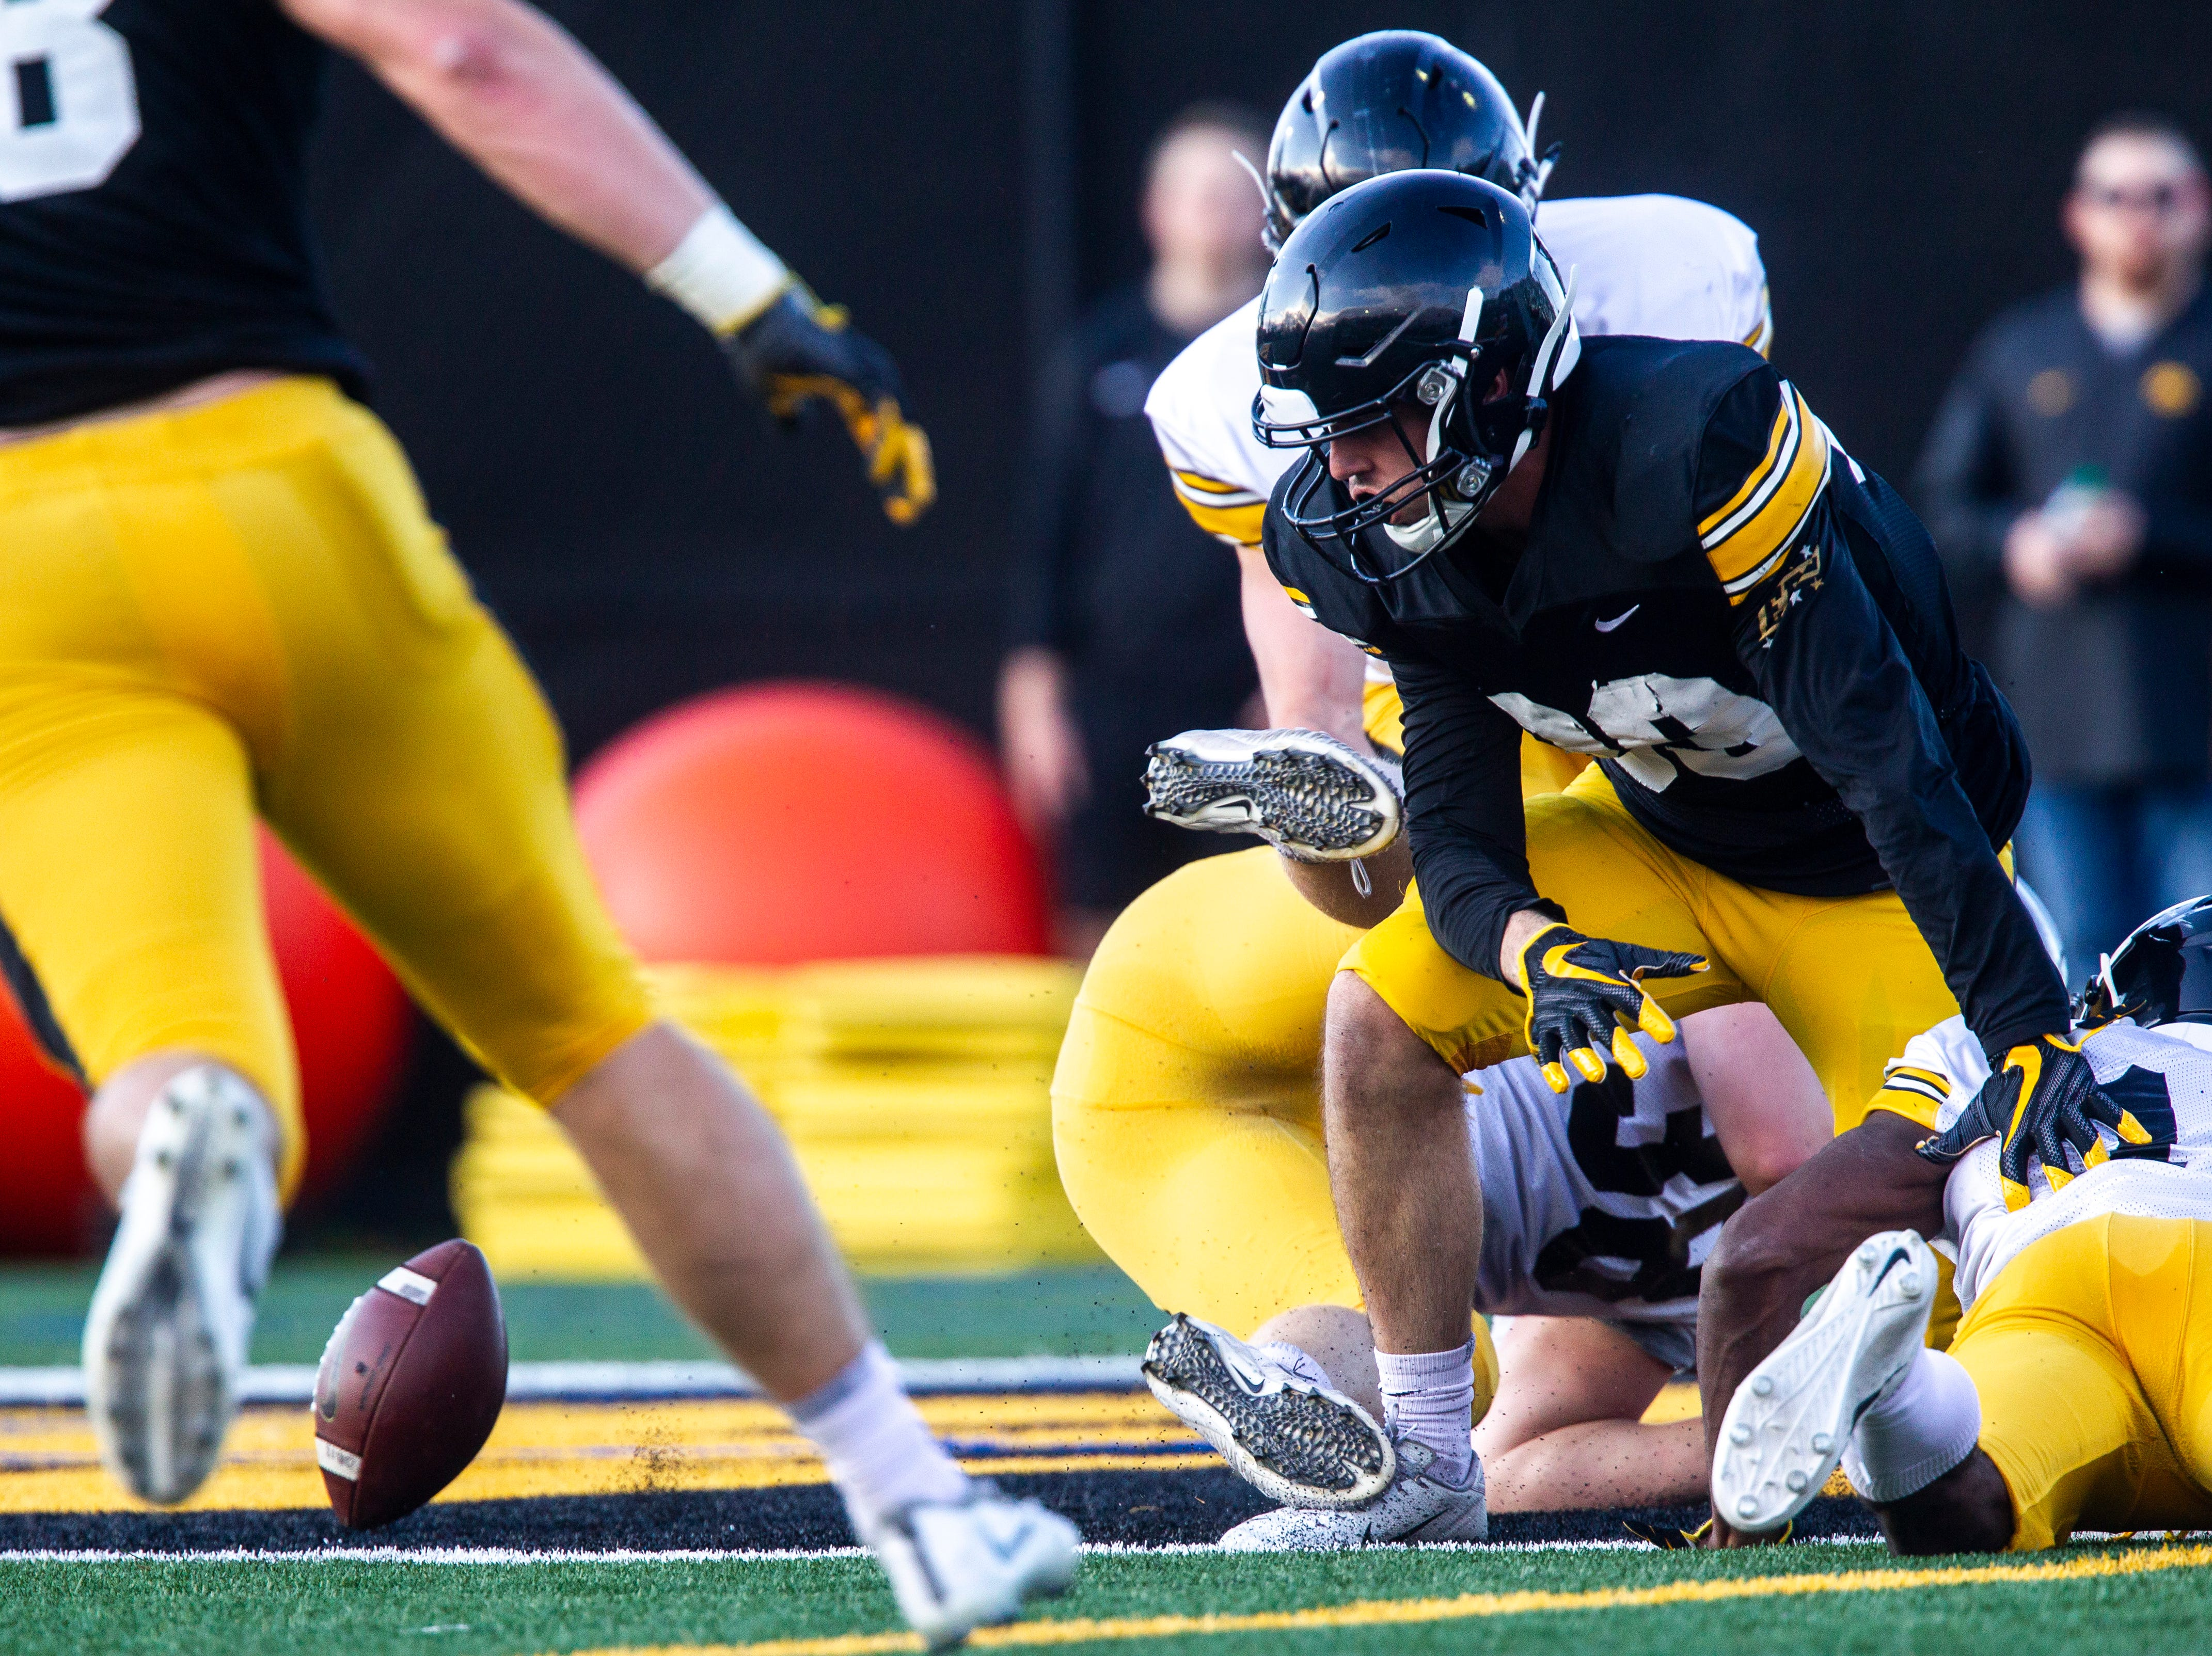 Iowa wide receiver Nico Ragaini scrambles to recover a near-goal-line fumble forced by defensive back Terry Roberts (16) during the final spring football practice, Friday, April 26, 2019, at the University of Iowa outdoor practice facility in Iowa City, Iowa.